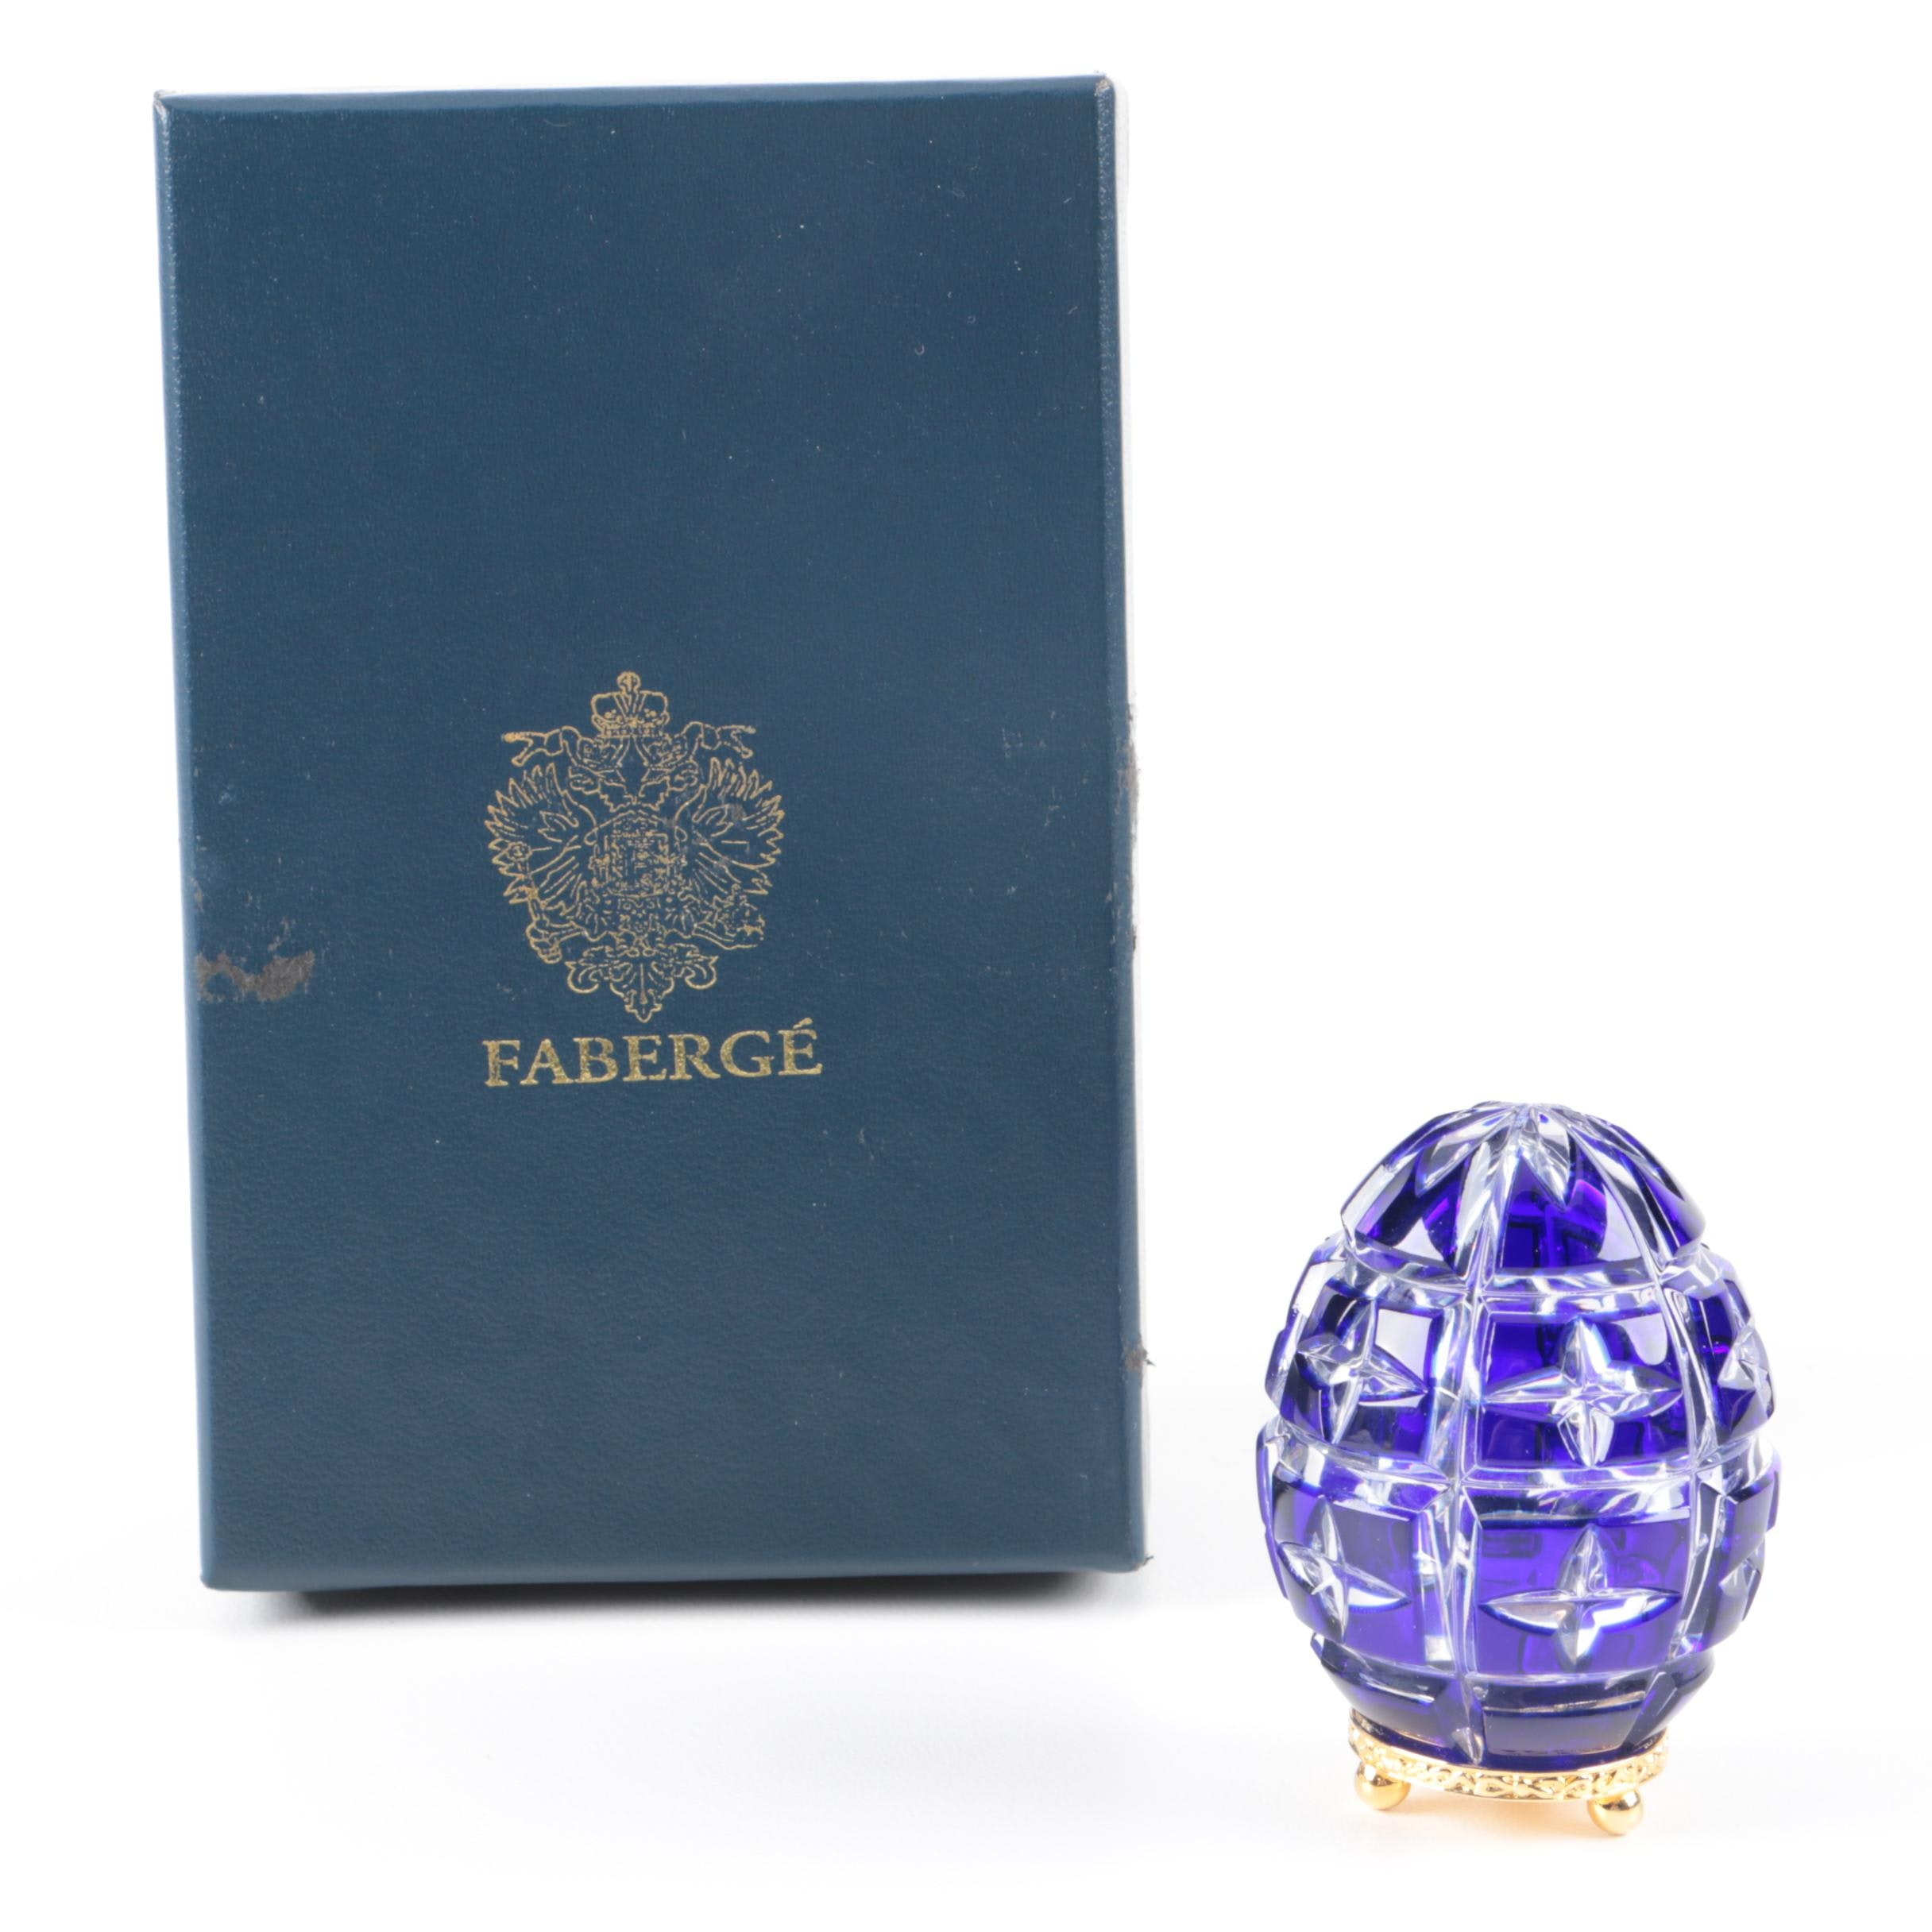 Faberge Crystal Egg Paperweight